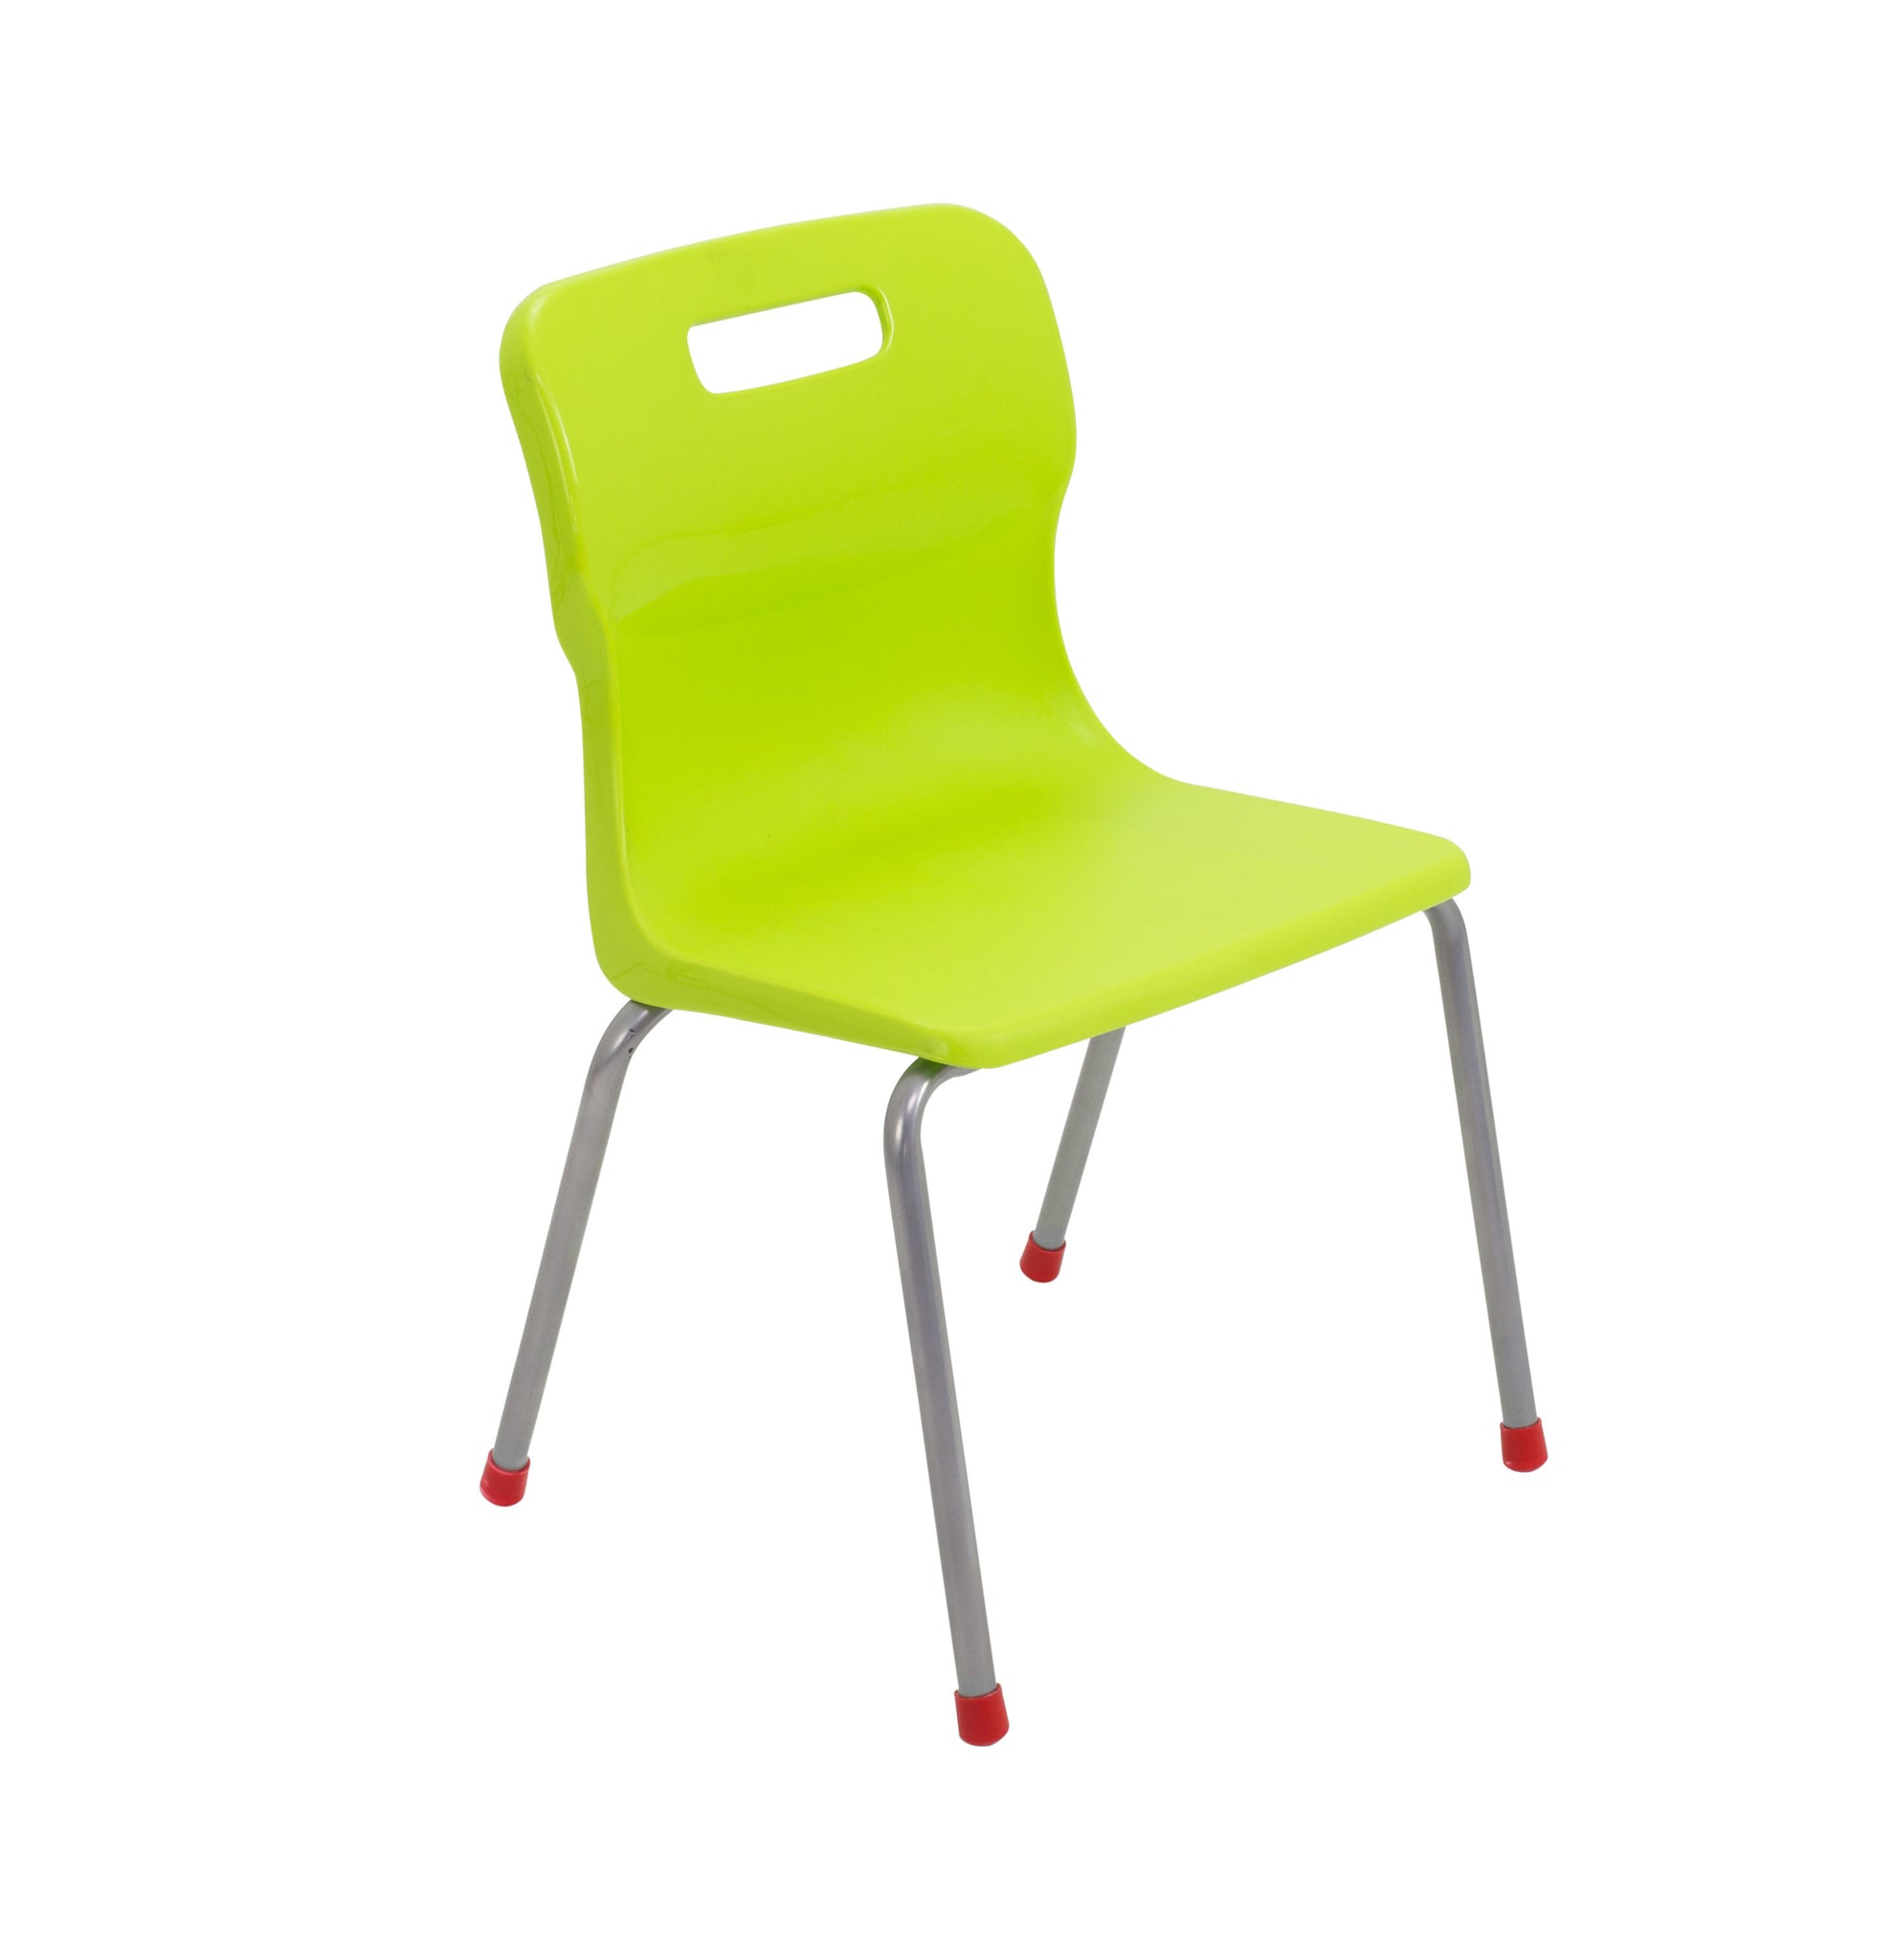 Children Chairs - Size 4 Metal Leg